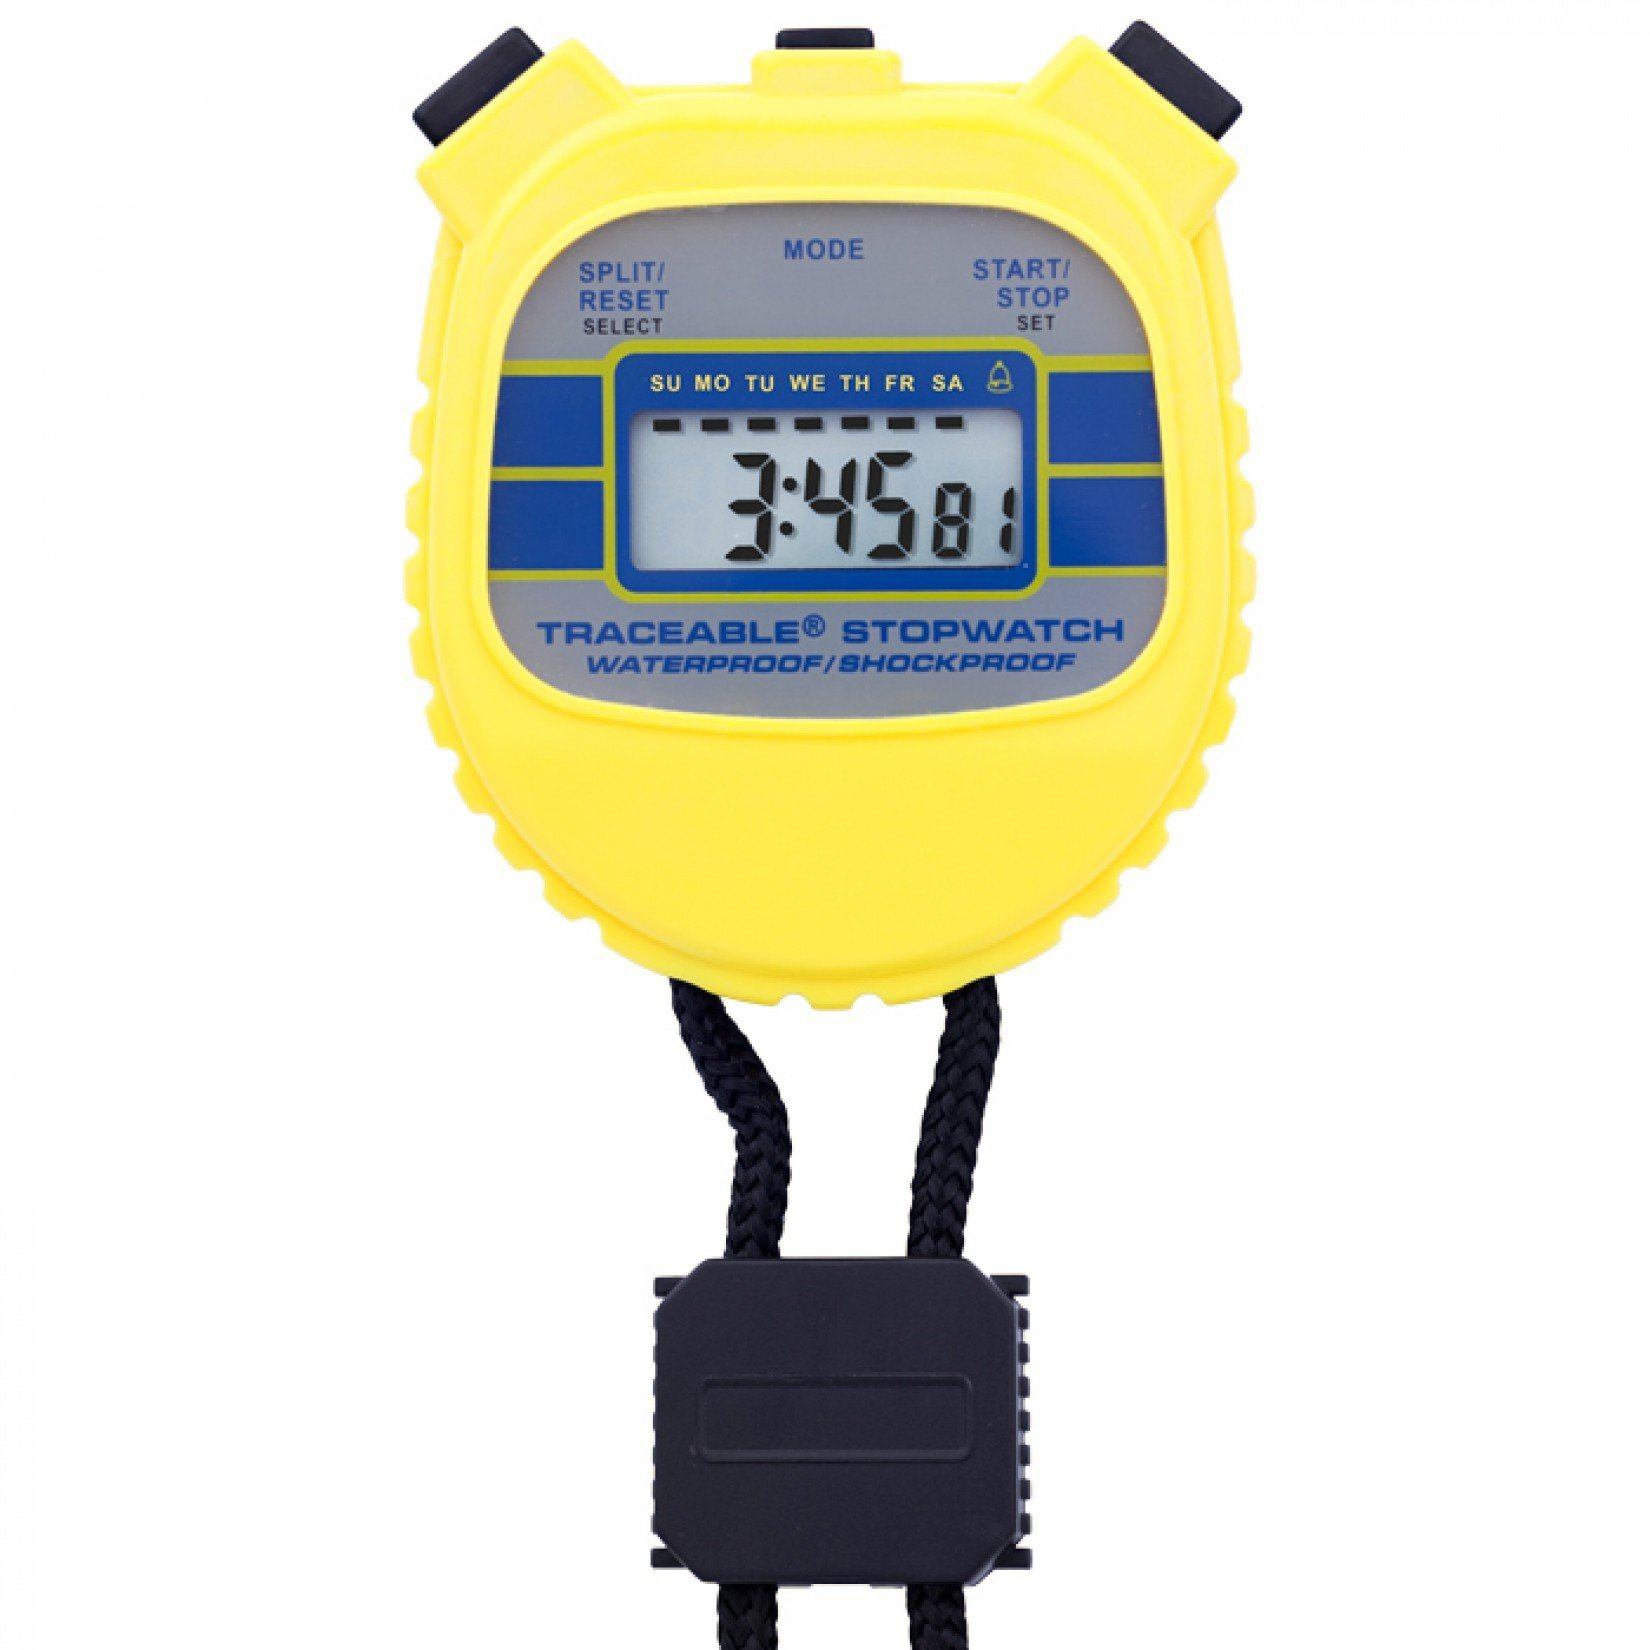 Control Company 1042 Traceable Waterproof/Shockproof Stopwatch by Control